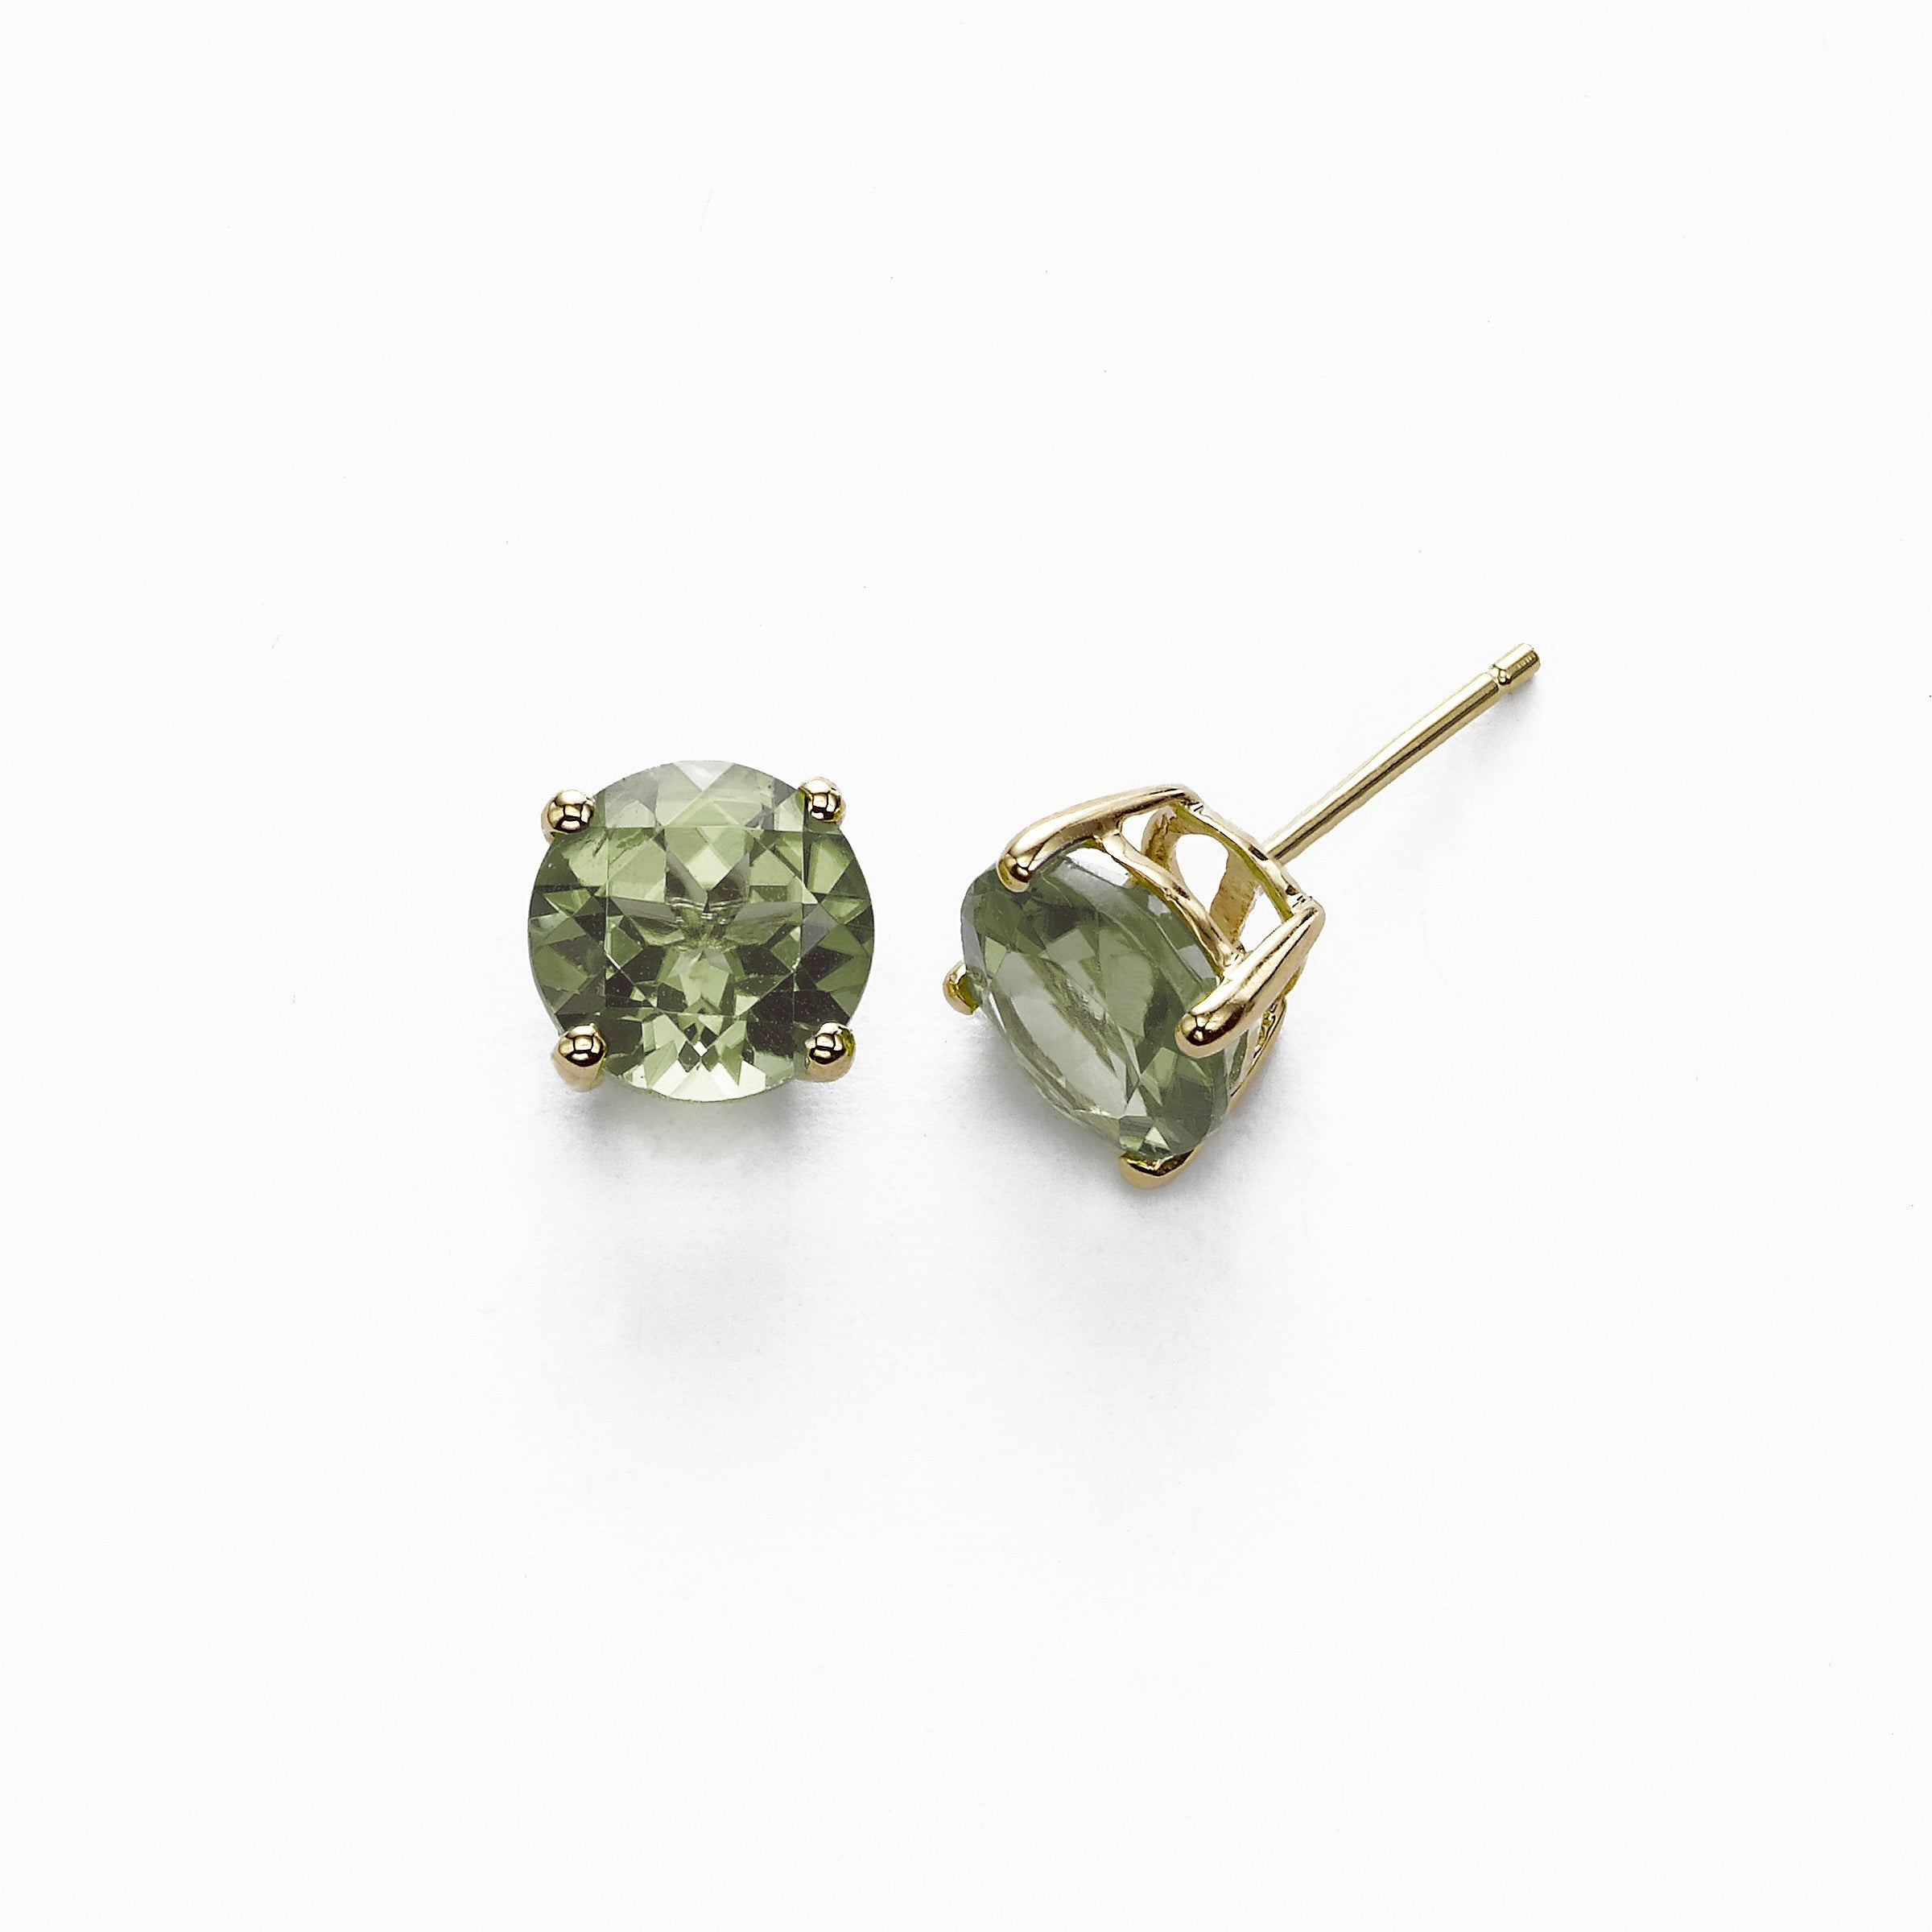 Round Prasiolite Stud Earrings, 8 MM, 14K Yellow Gold